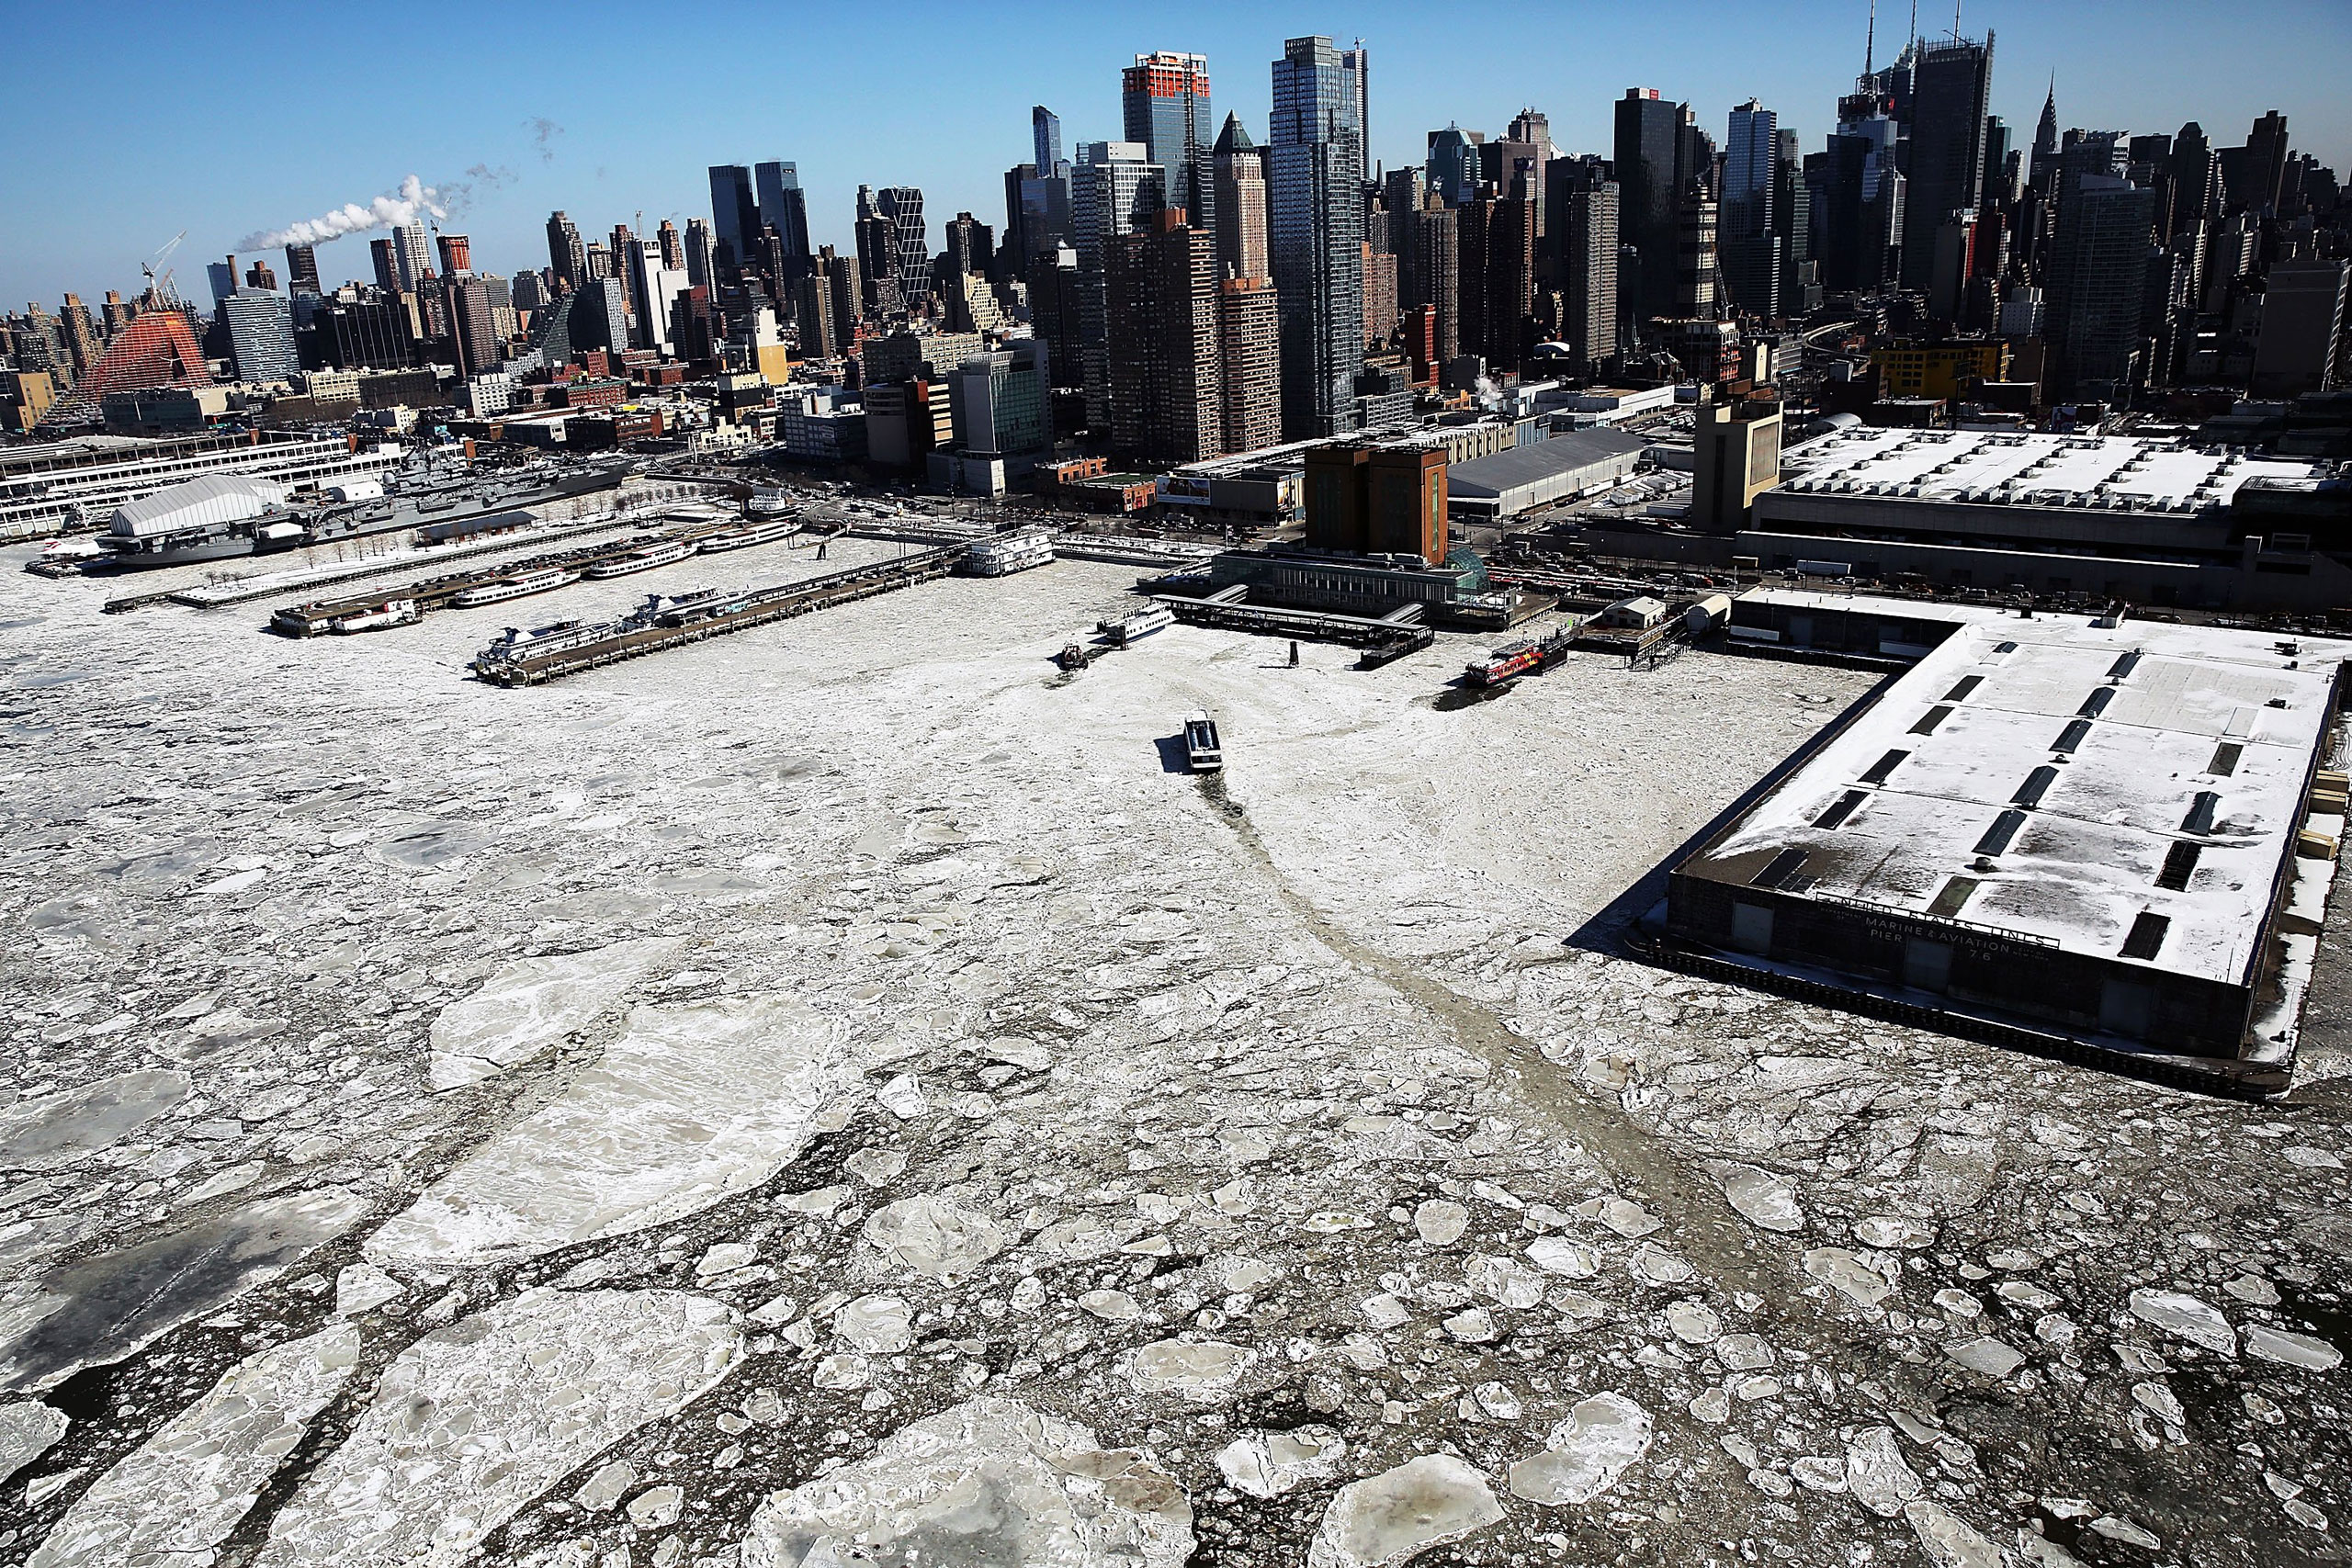 Ice floes are viewed along the Hudson River in Manhattan on a frigidly cold day.  New York. Feb. 20, 2015. Much of the East Coast and Western United States experienced unusually cold weather during the winter of 2015, with temperatures in the teens and the wind chill factor making it feel well below zero.